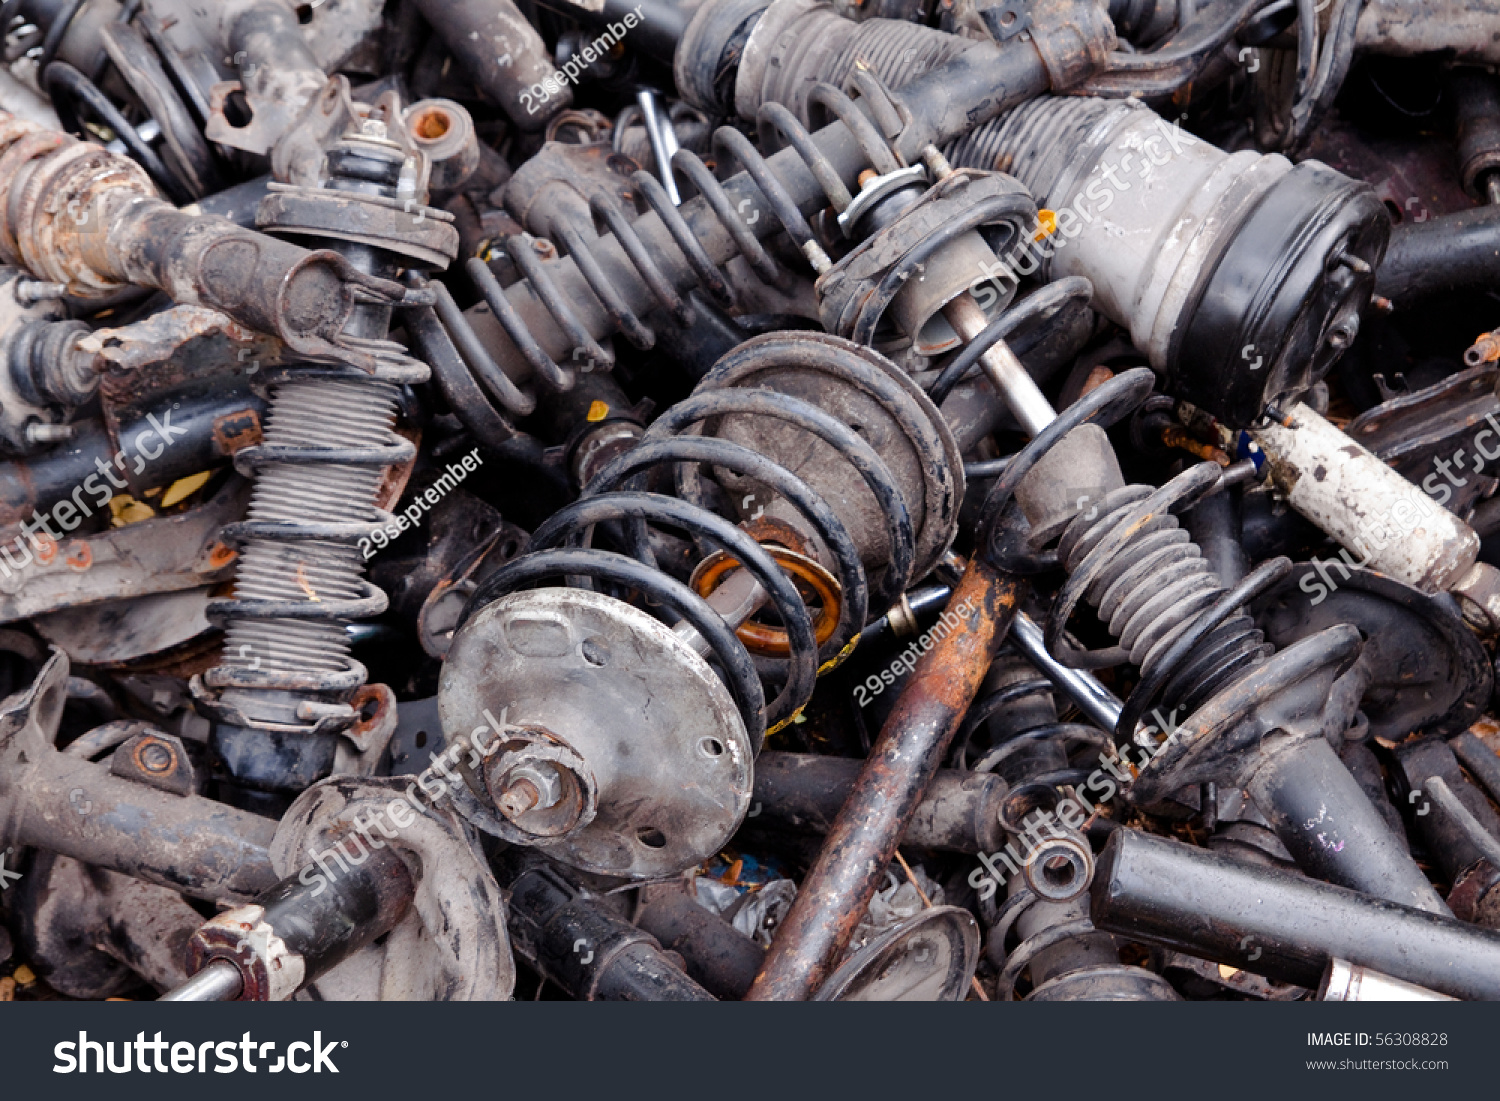 Royalty Free Metal Waste And Scrap The Old Car Parts 56308828